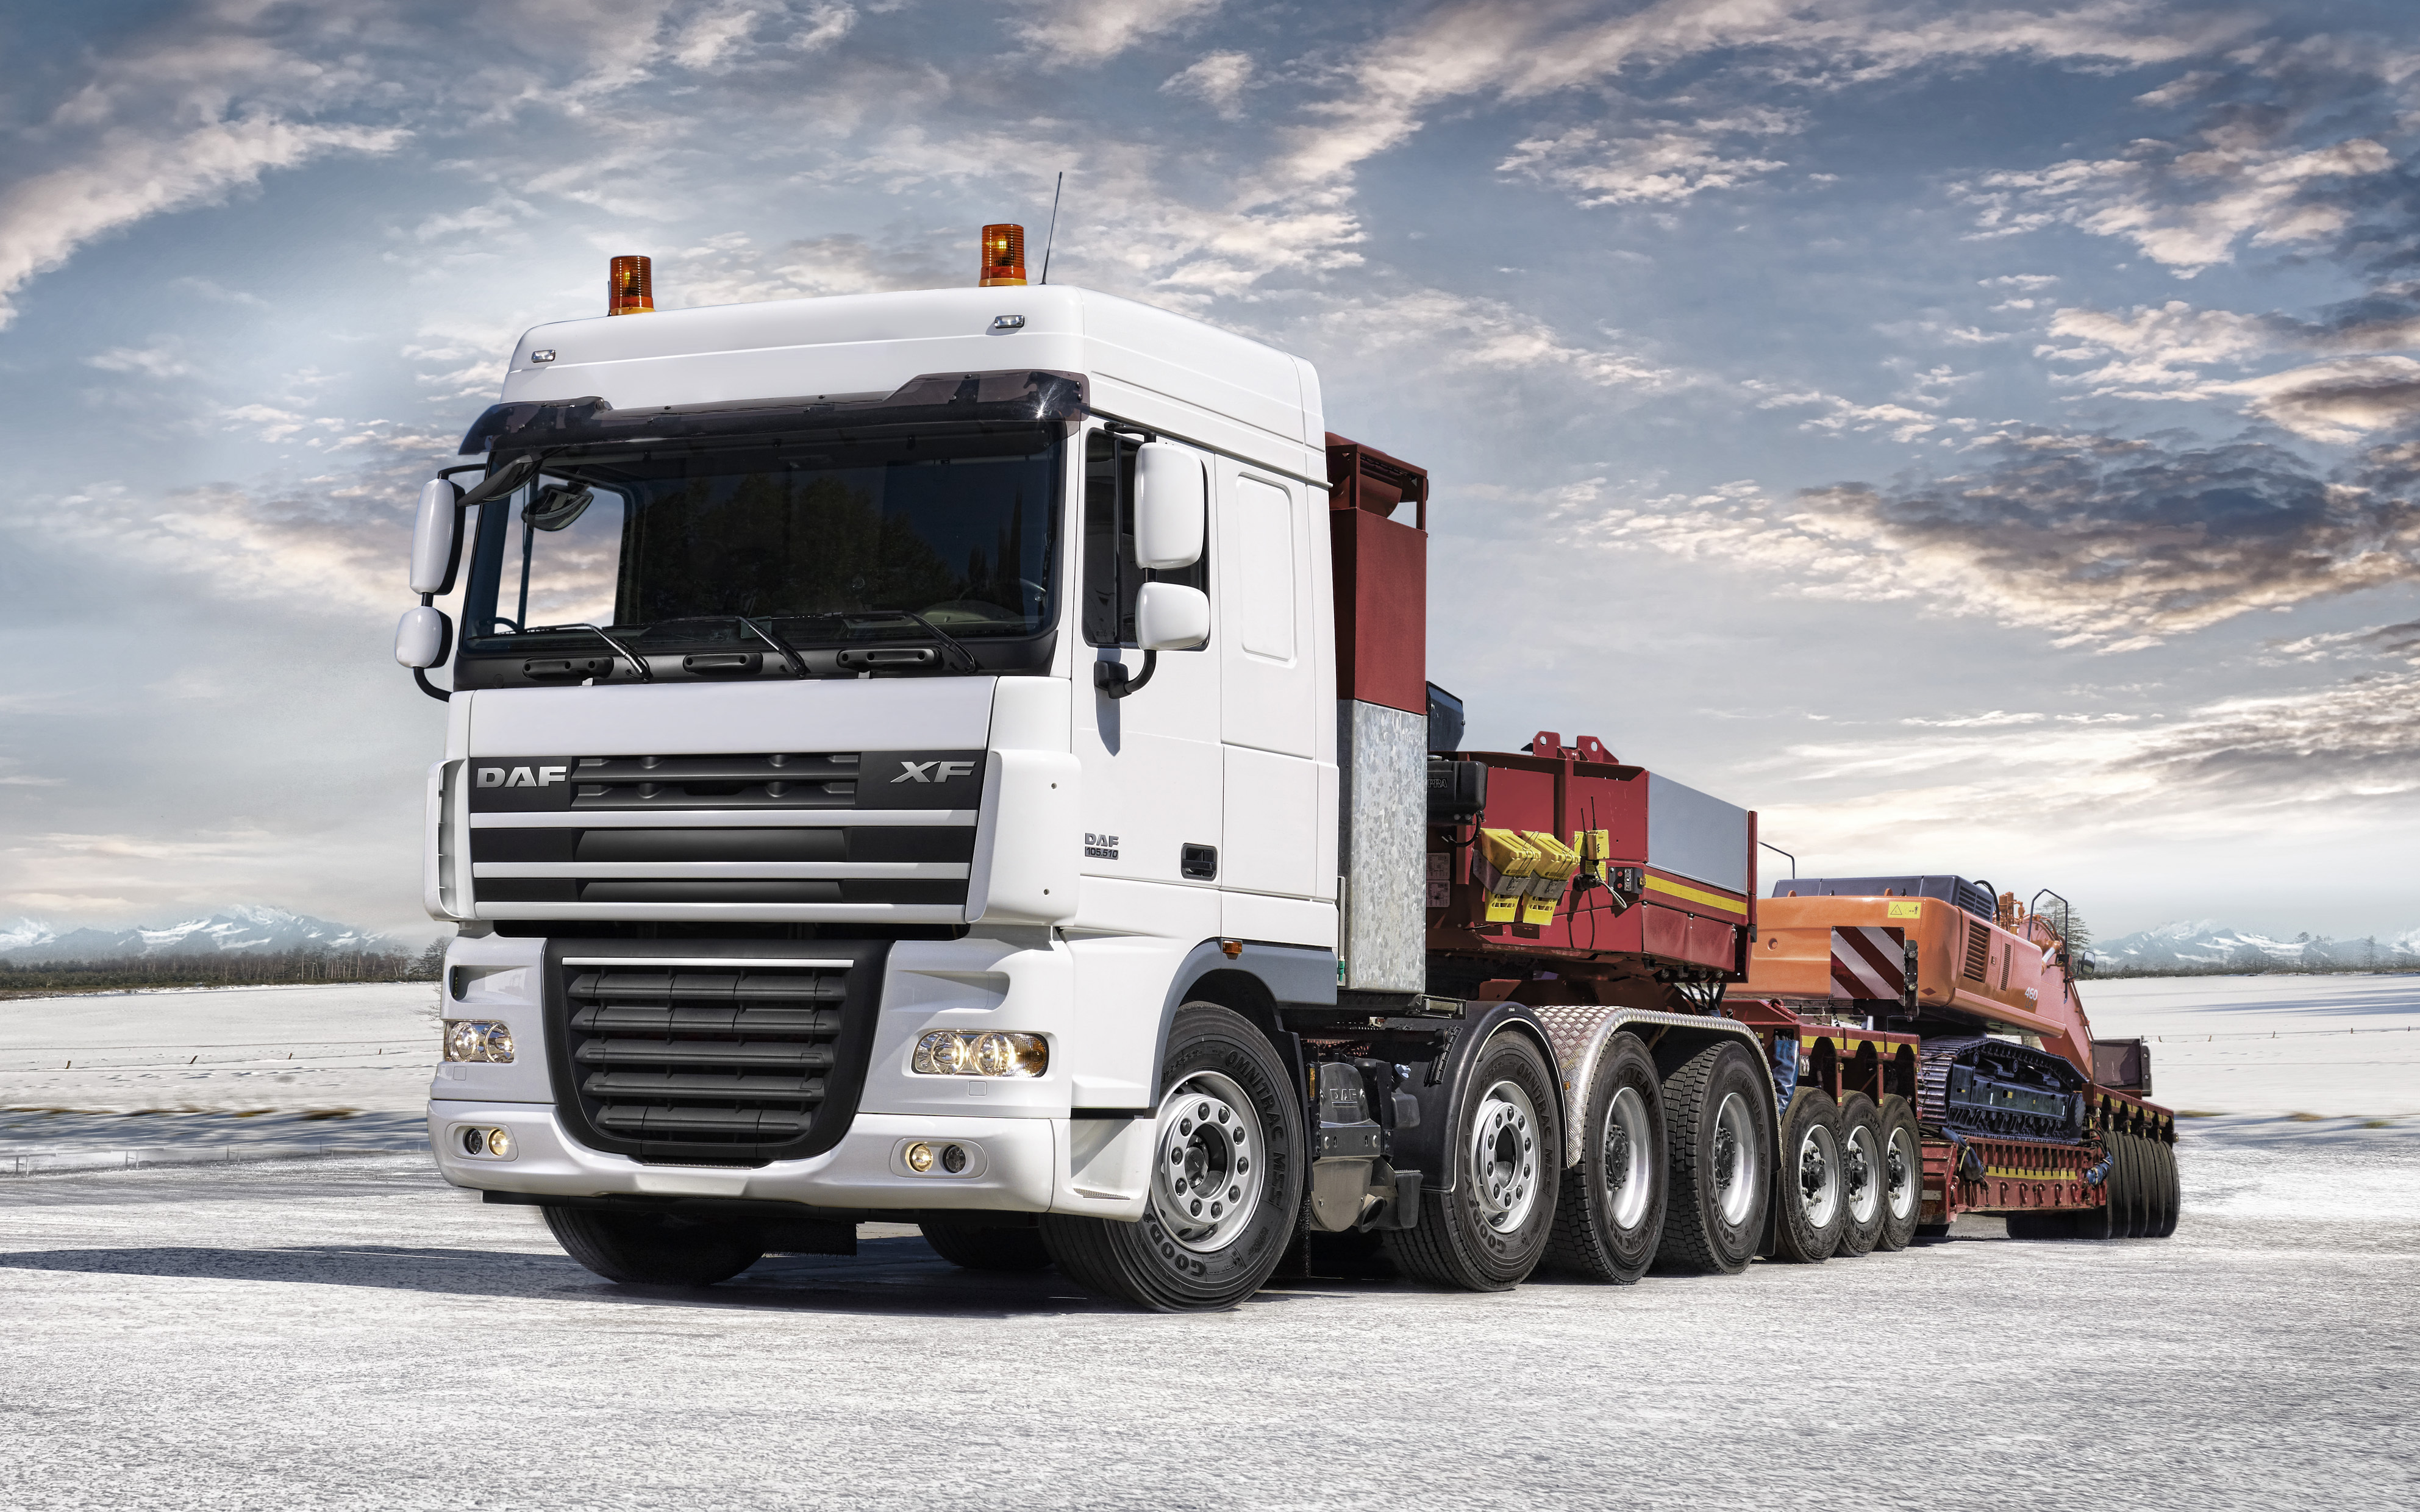 volvo truck wallpapers high resolution. volvo truck wallpapers high resolution l